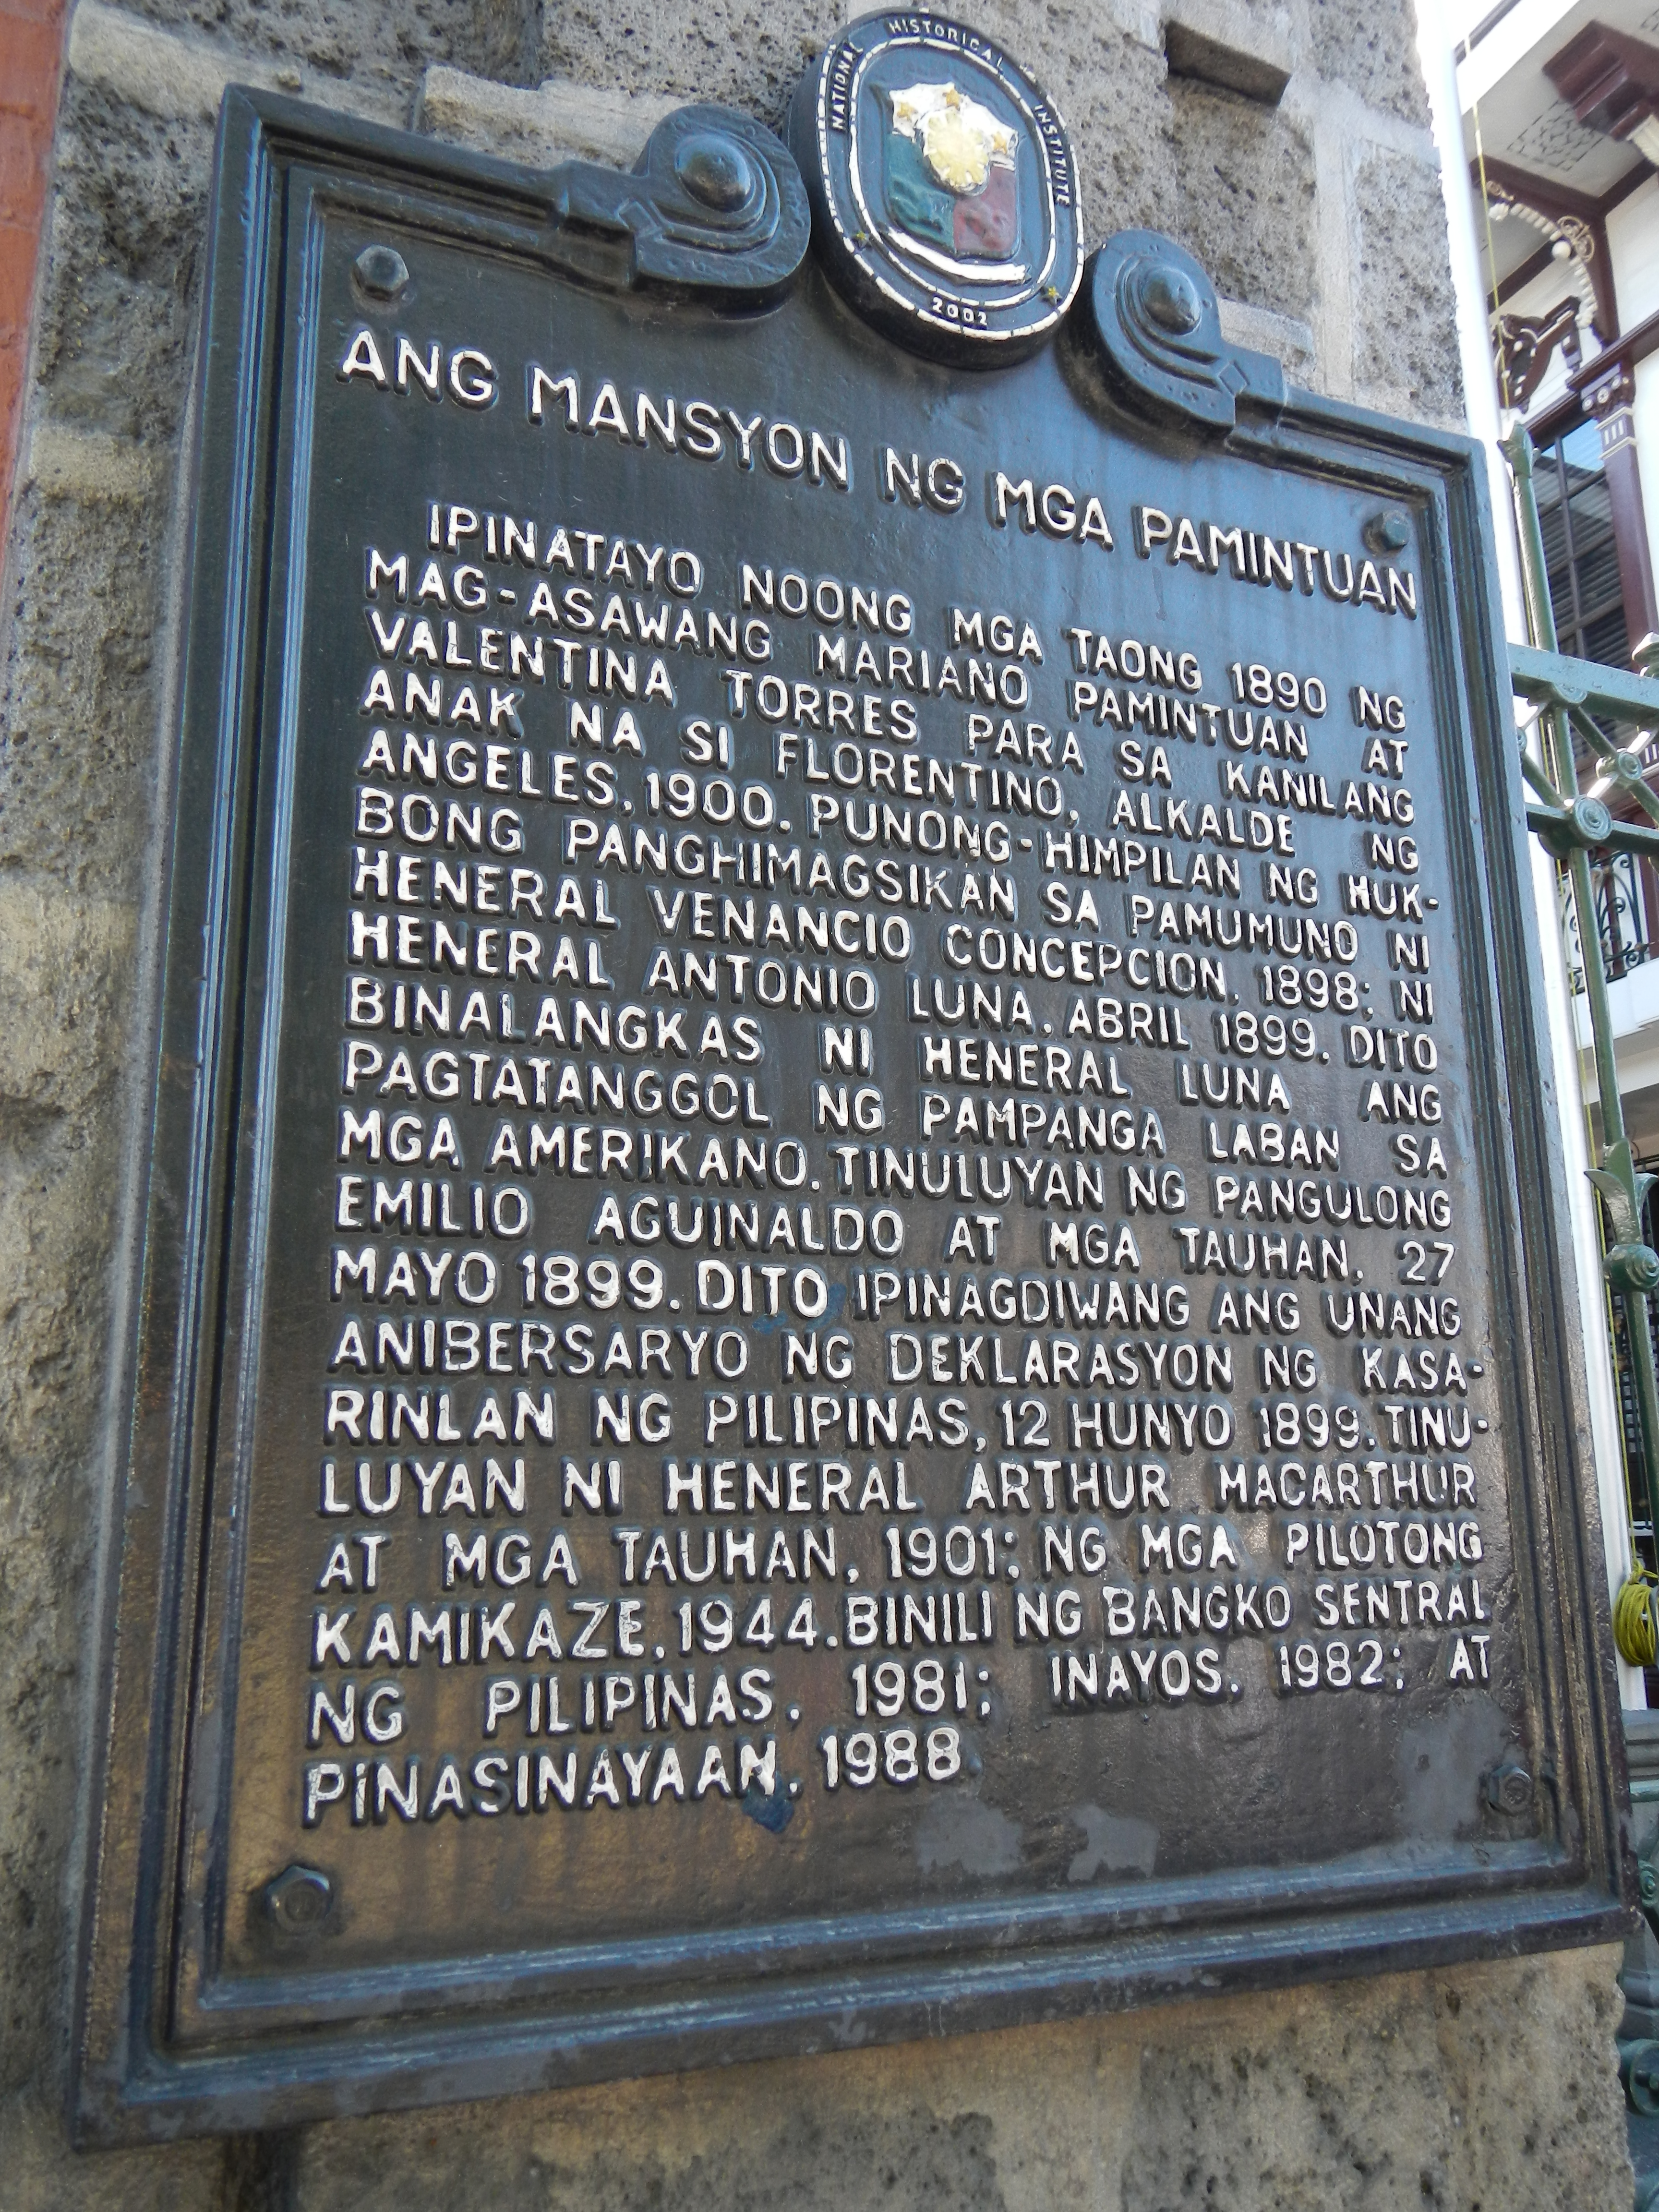 FilePamintuan Mansion Historical Marker Filipino Angeles Cityjpg Wikimedia Commons